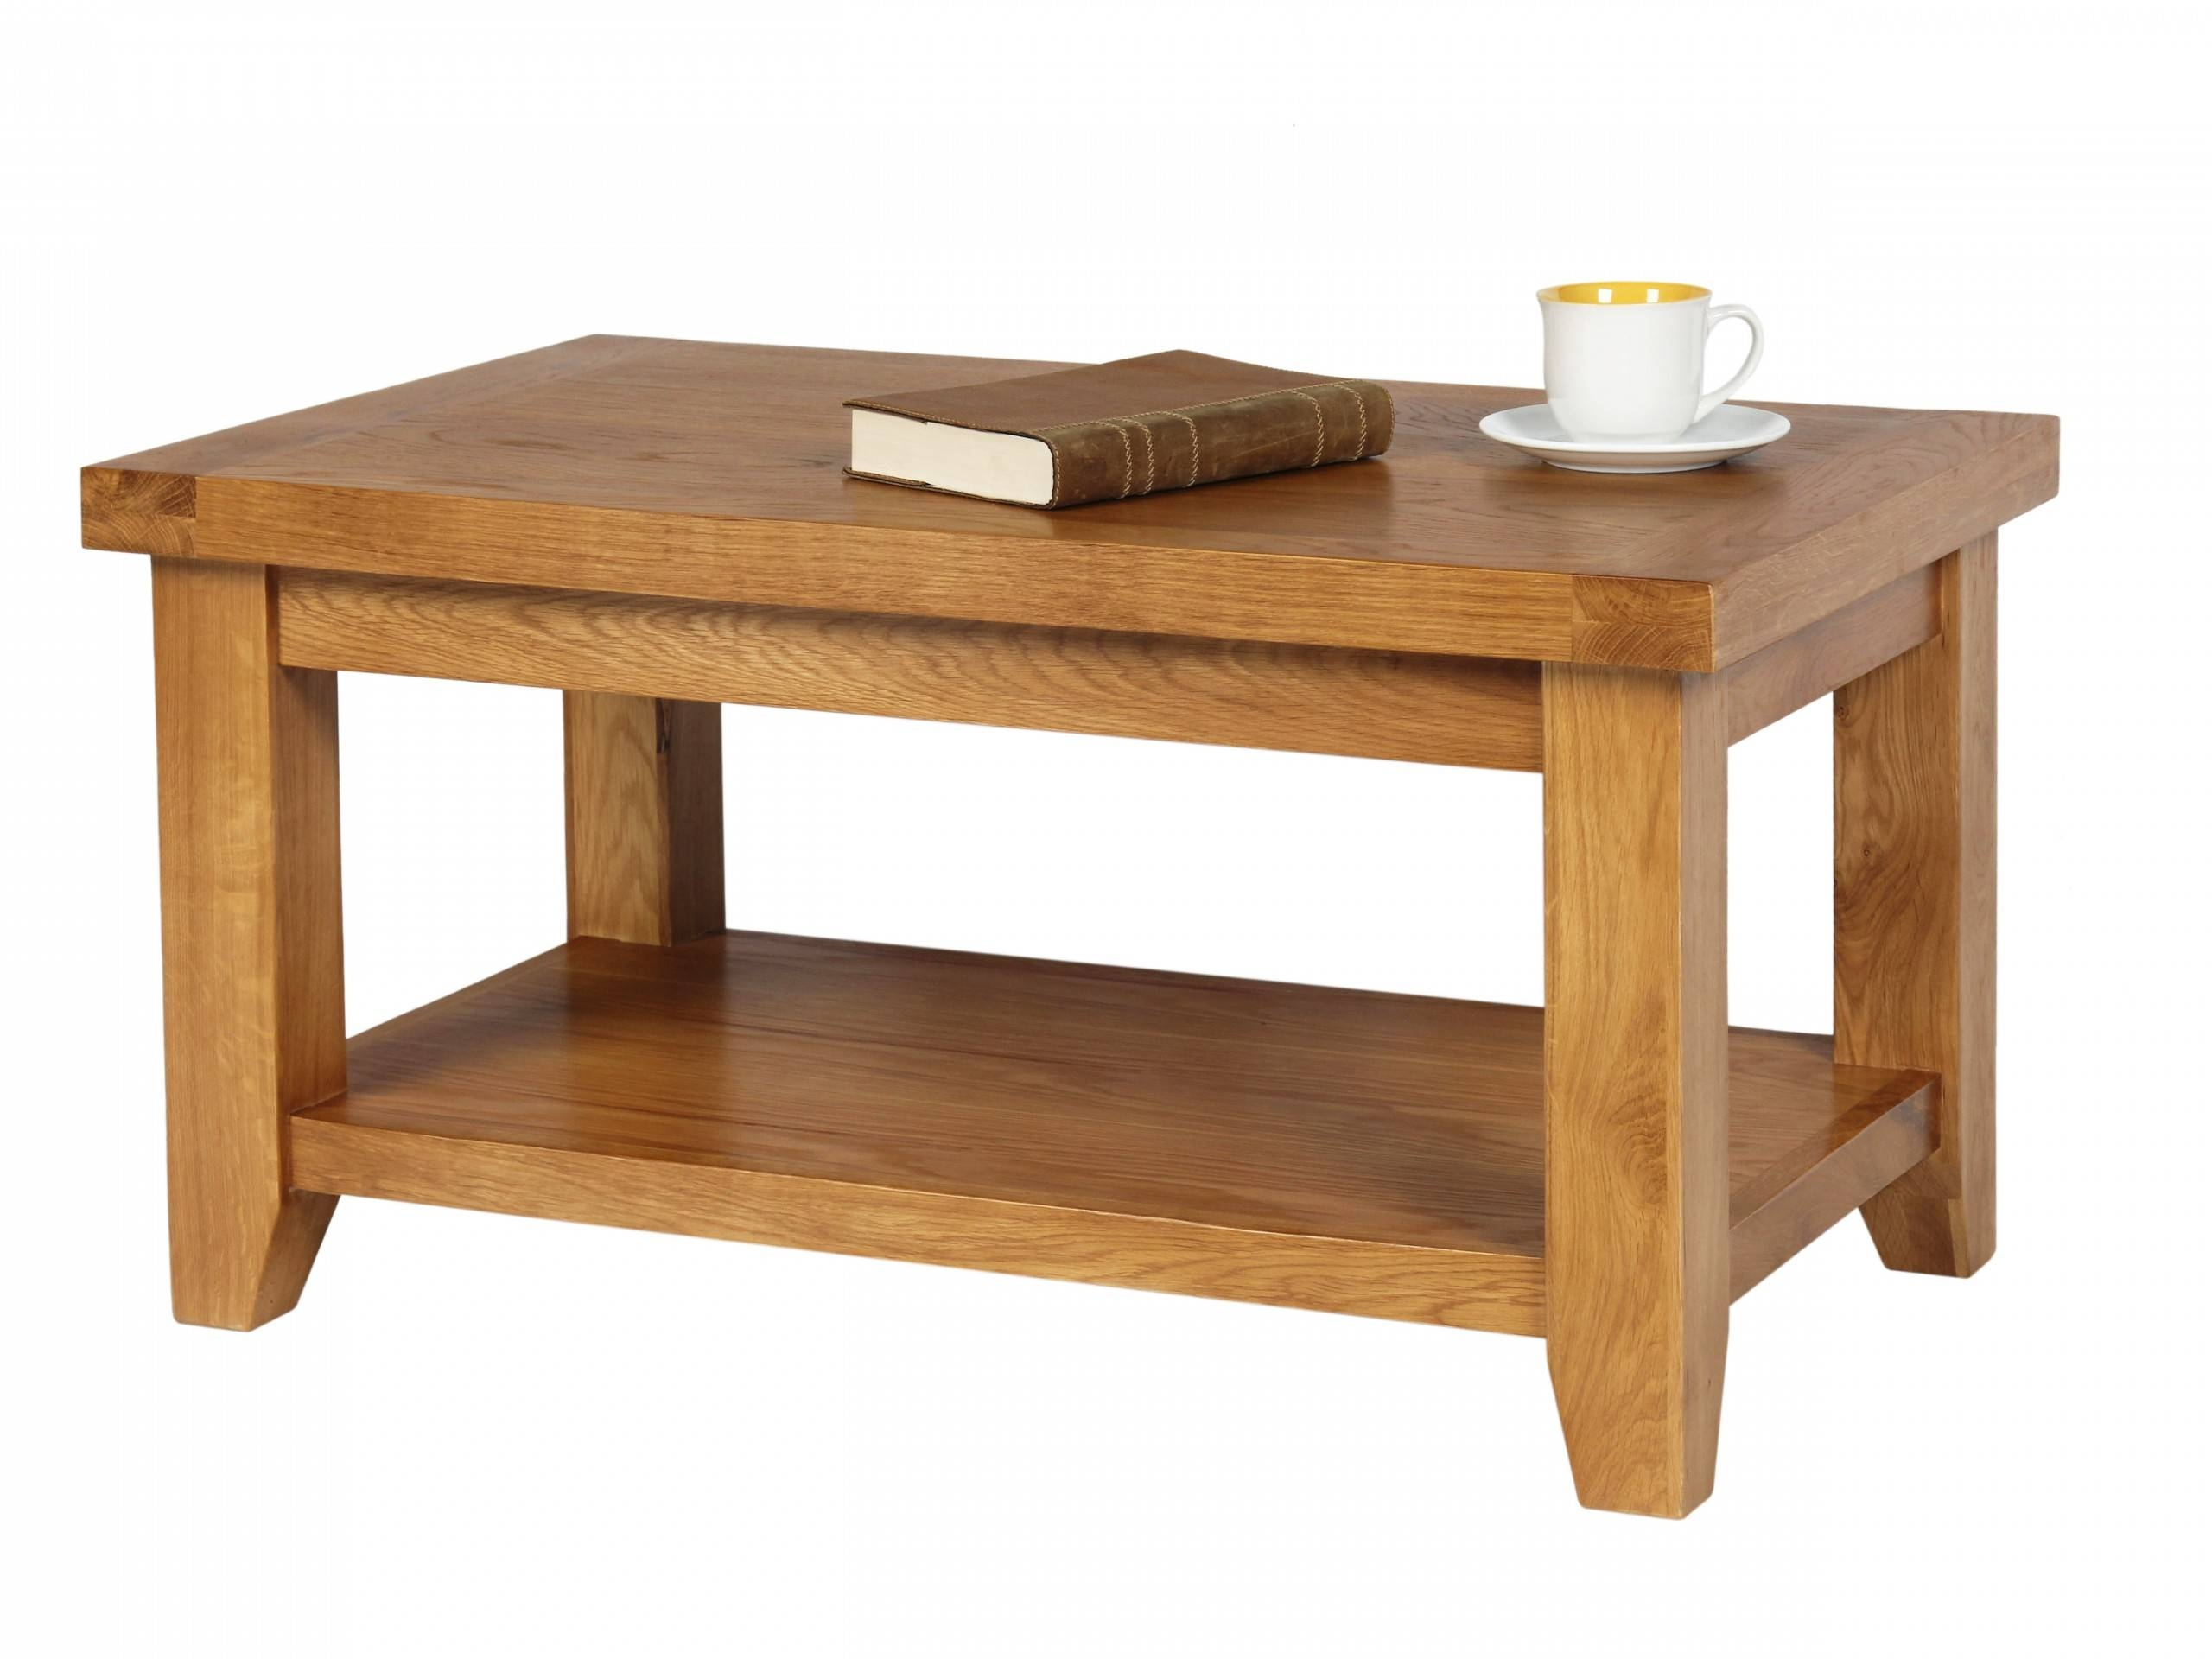 Country Oak Coffee Table With Shelf pertaining to Oak Coffee Table With Shelf (Image 7 of 15)